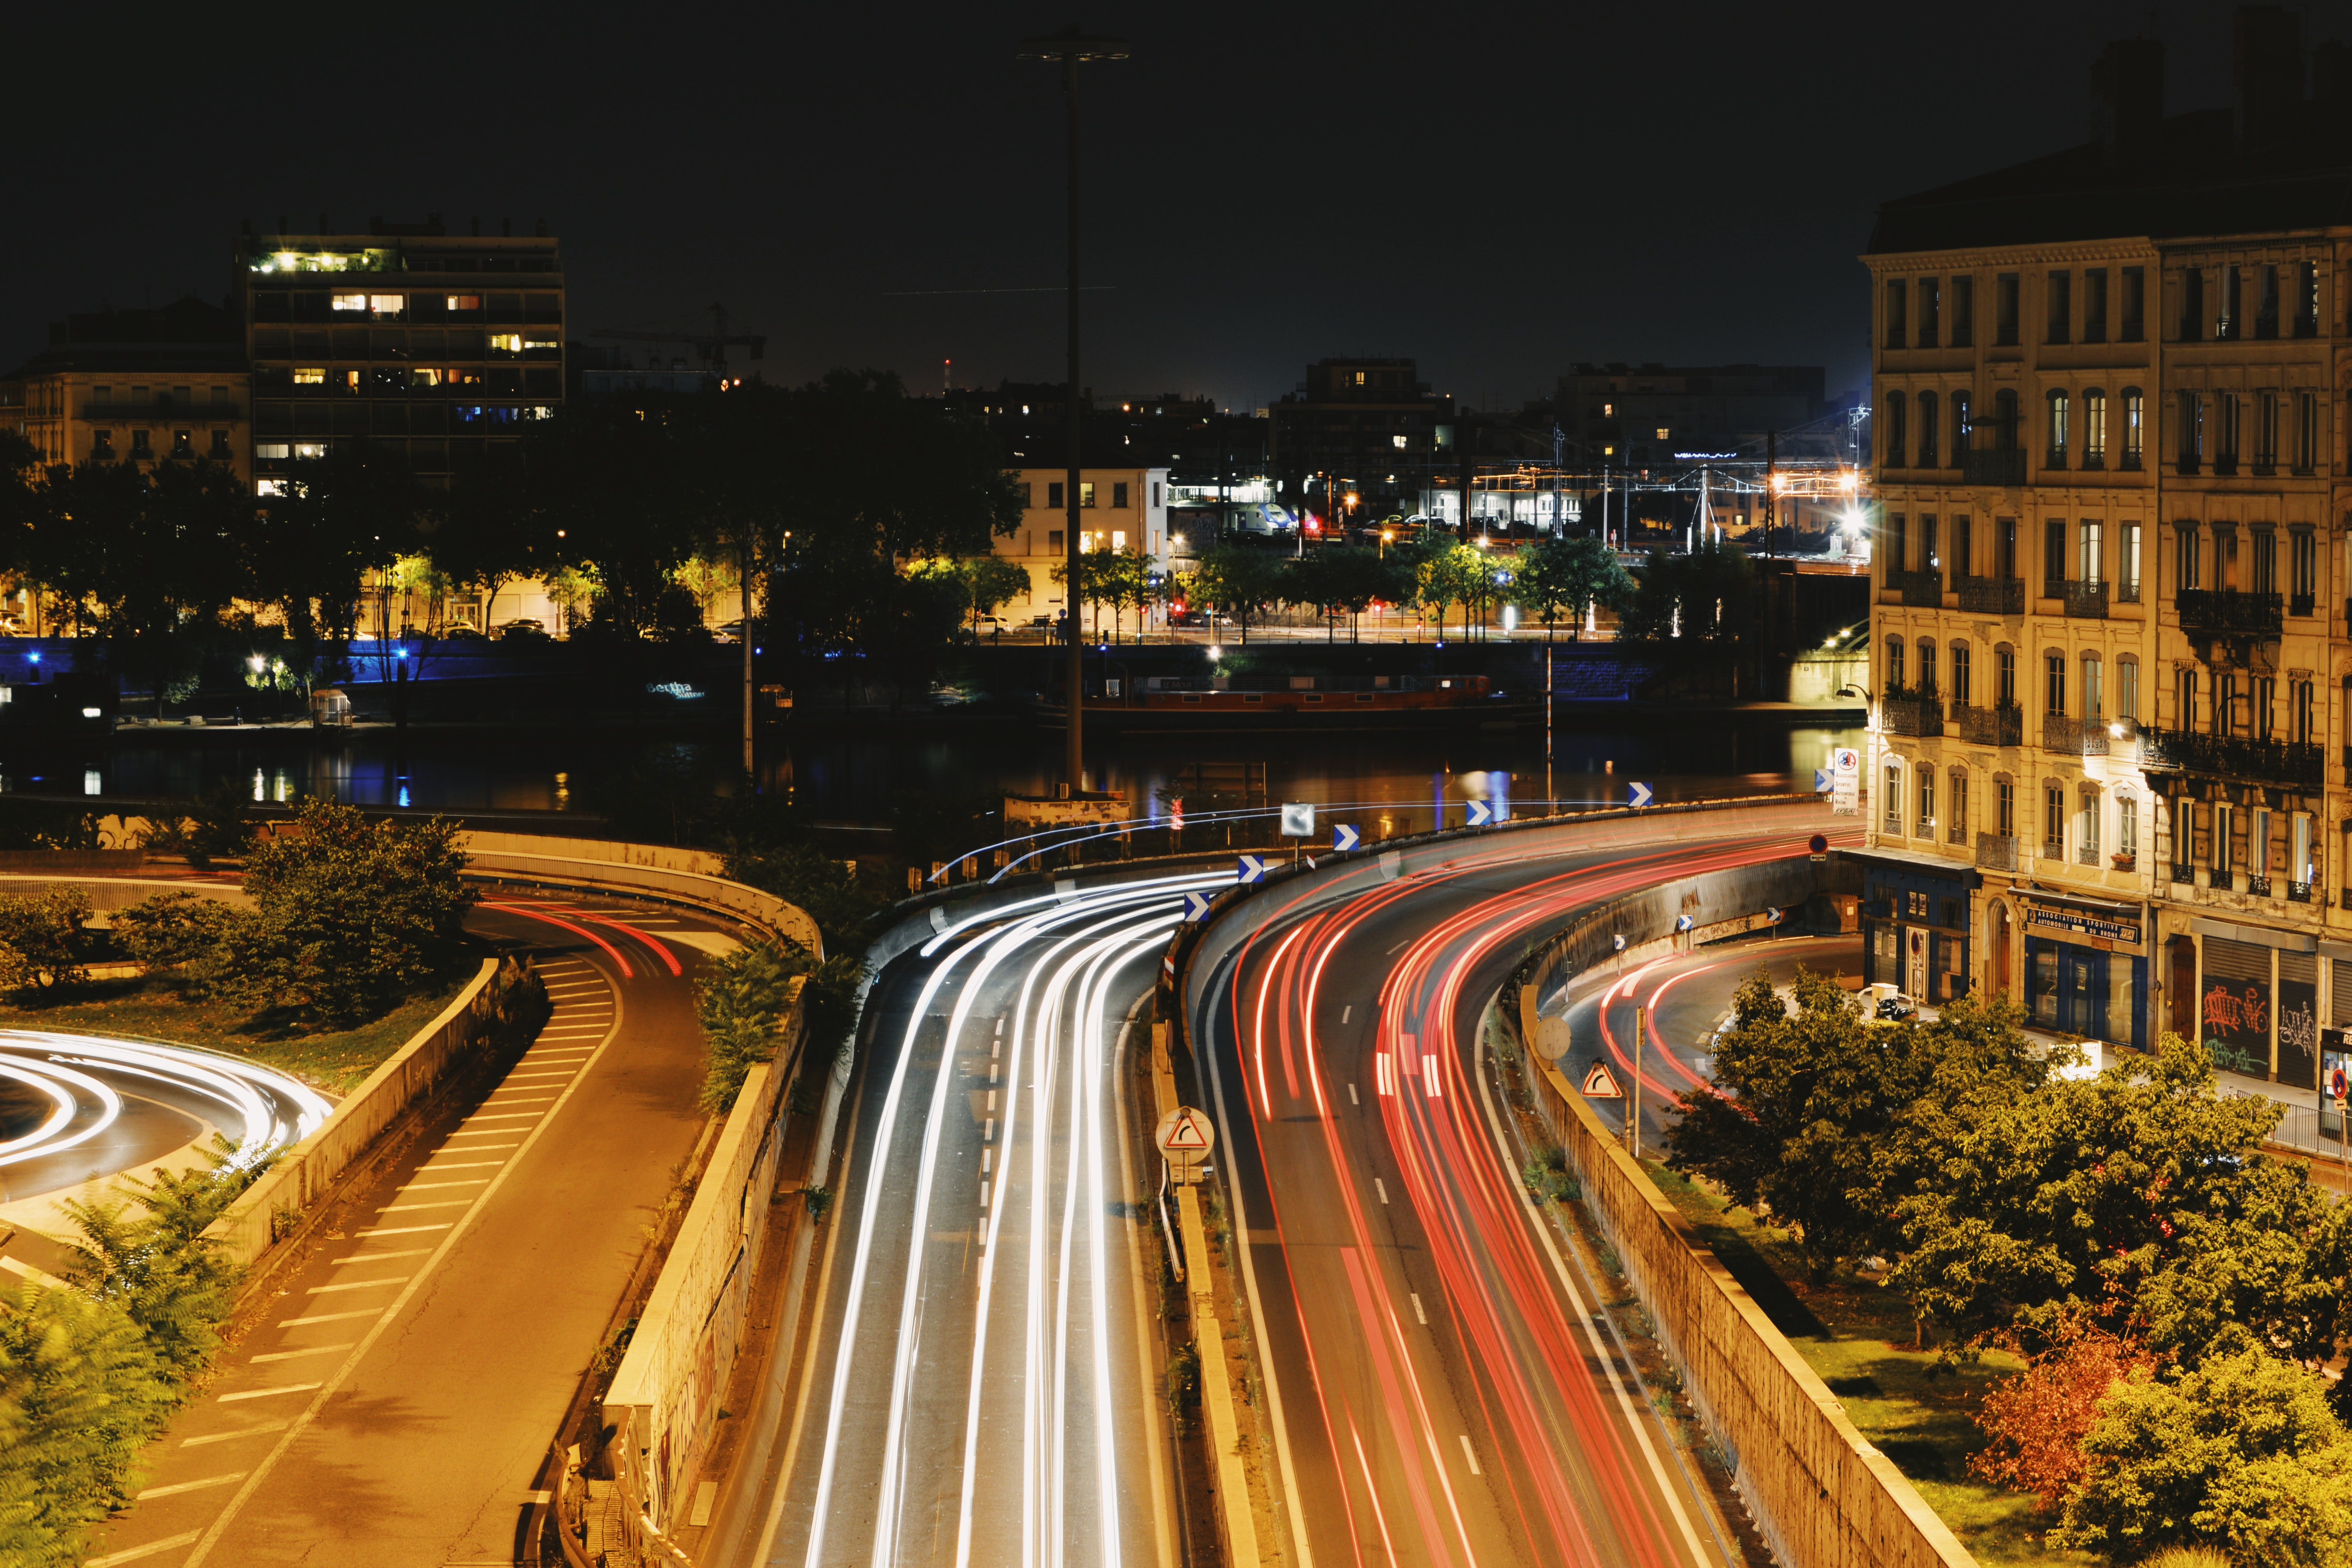 timelapse photo of cars on road during nighttime